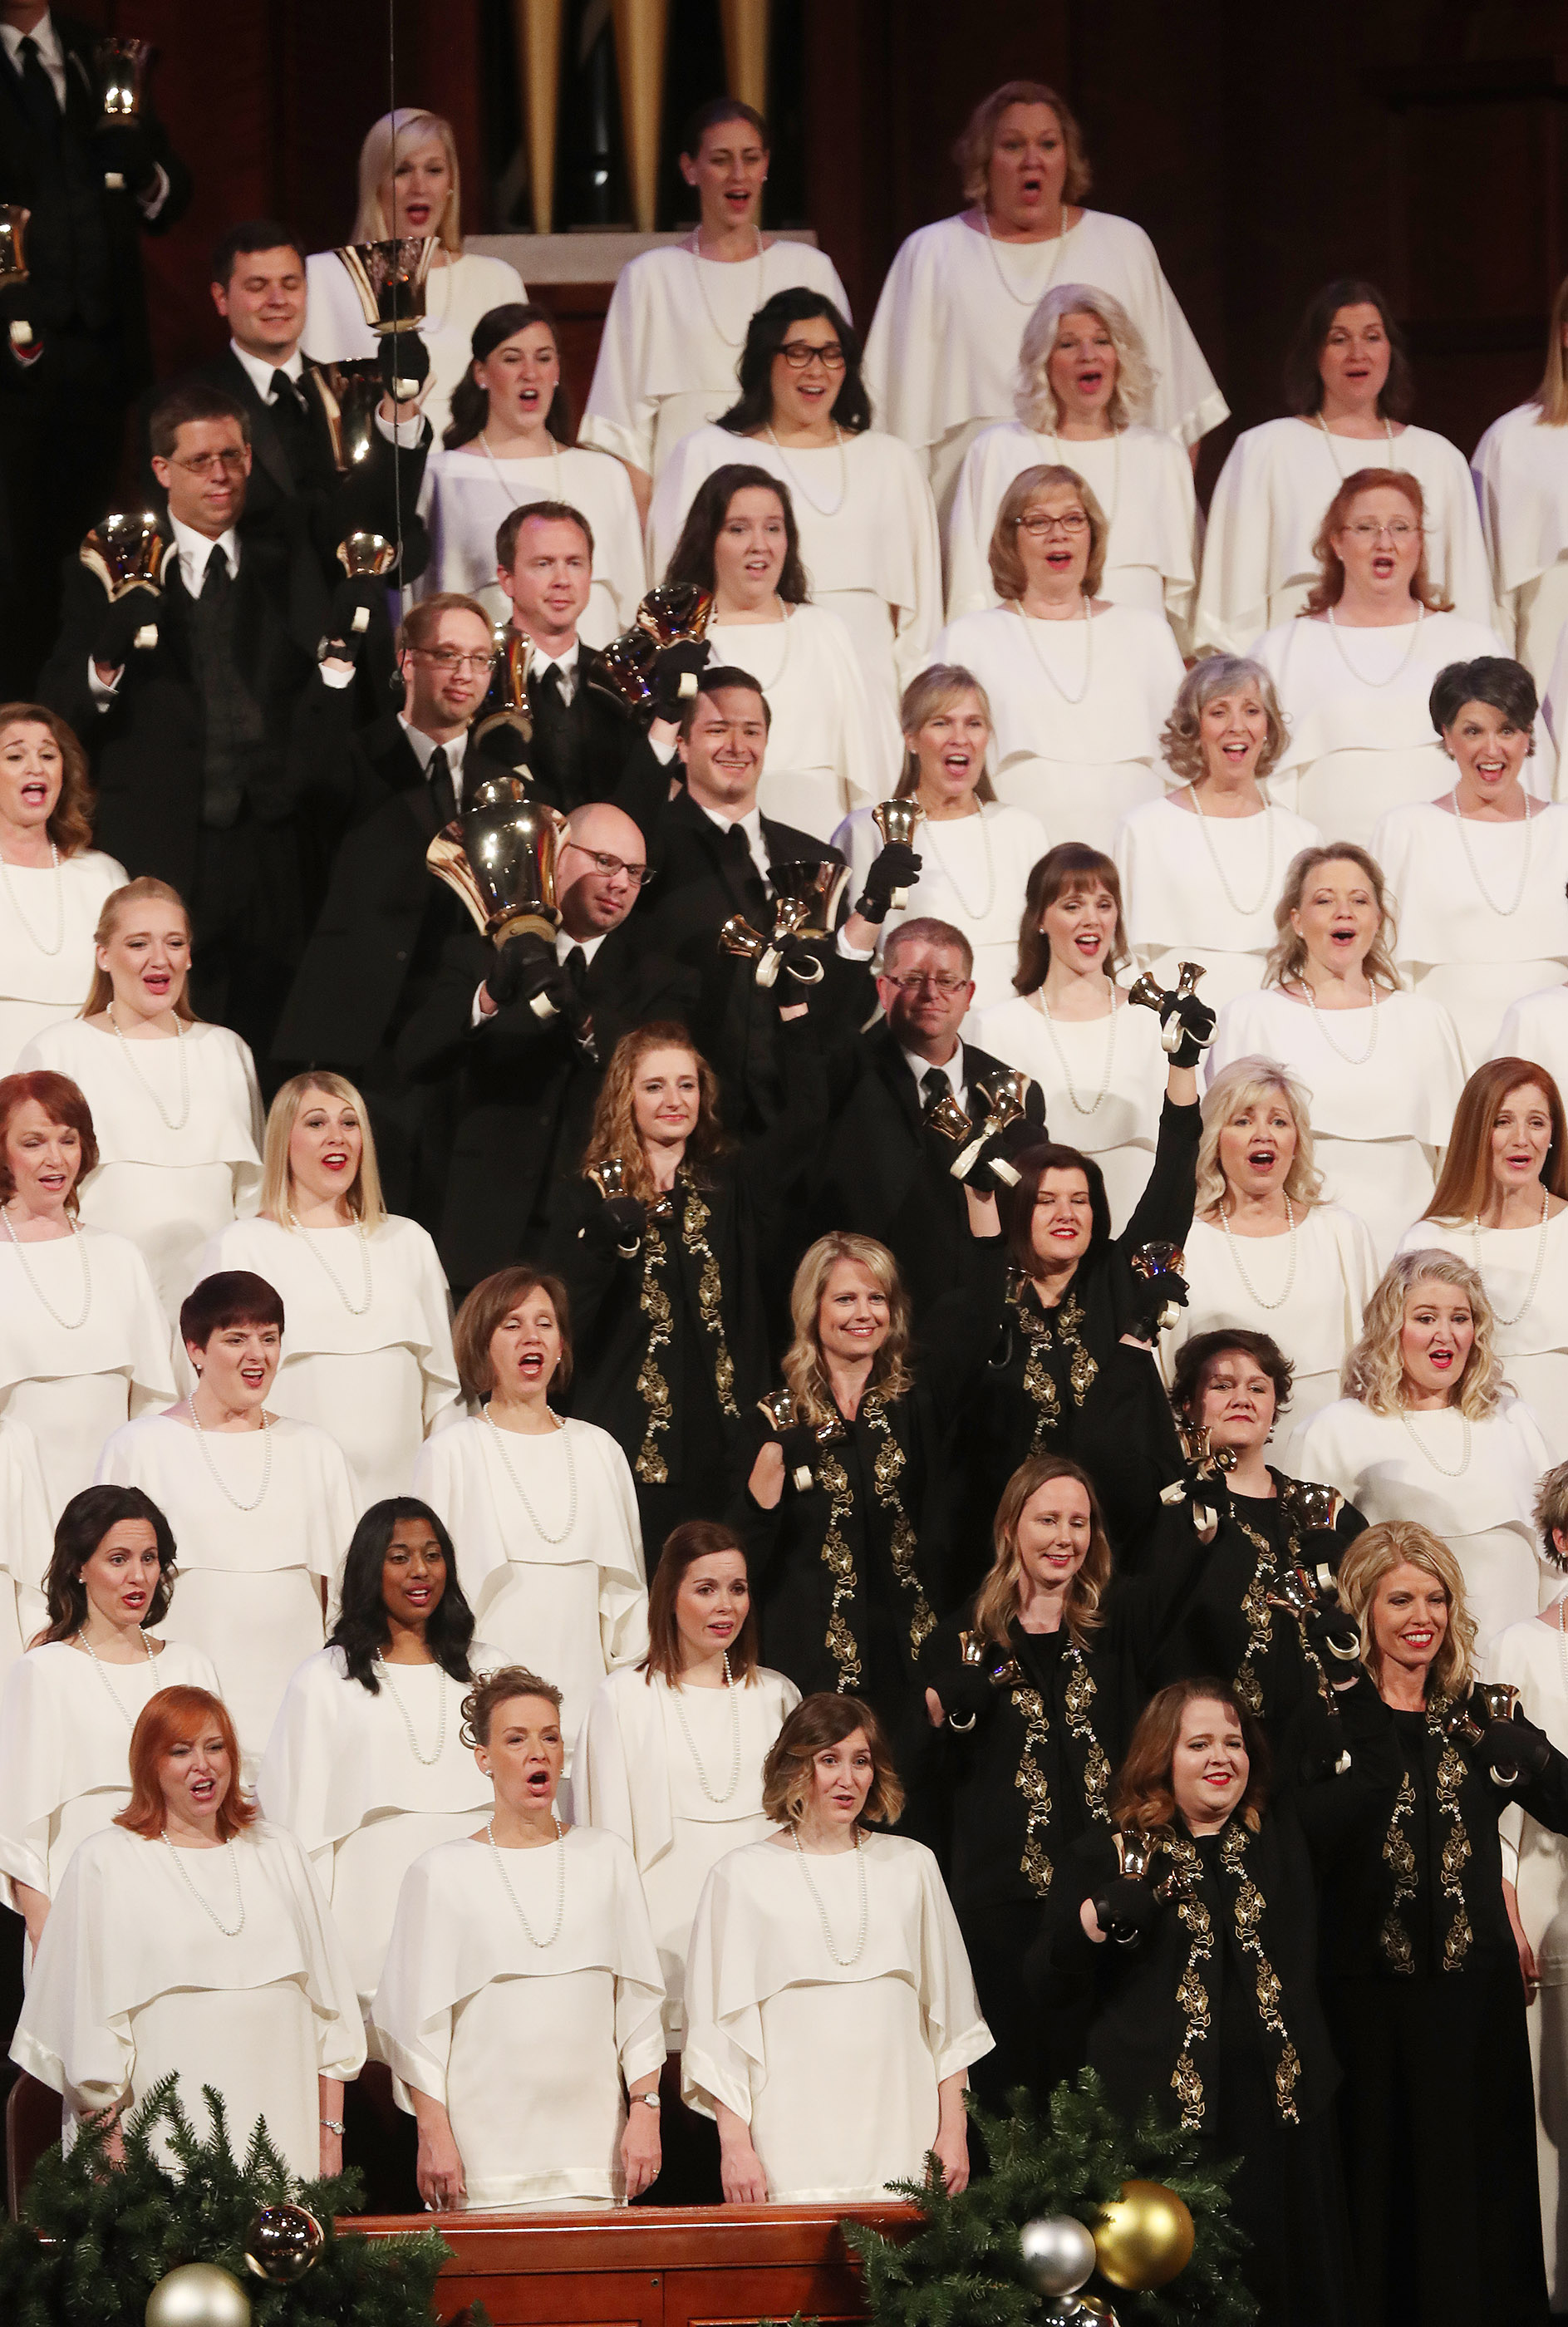 The Tabernacle Choir at Temple Square sing during their opening Christmas concert at the Conference Center in Salt Lake City on Thursday, Dec. 13, 2018.